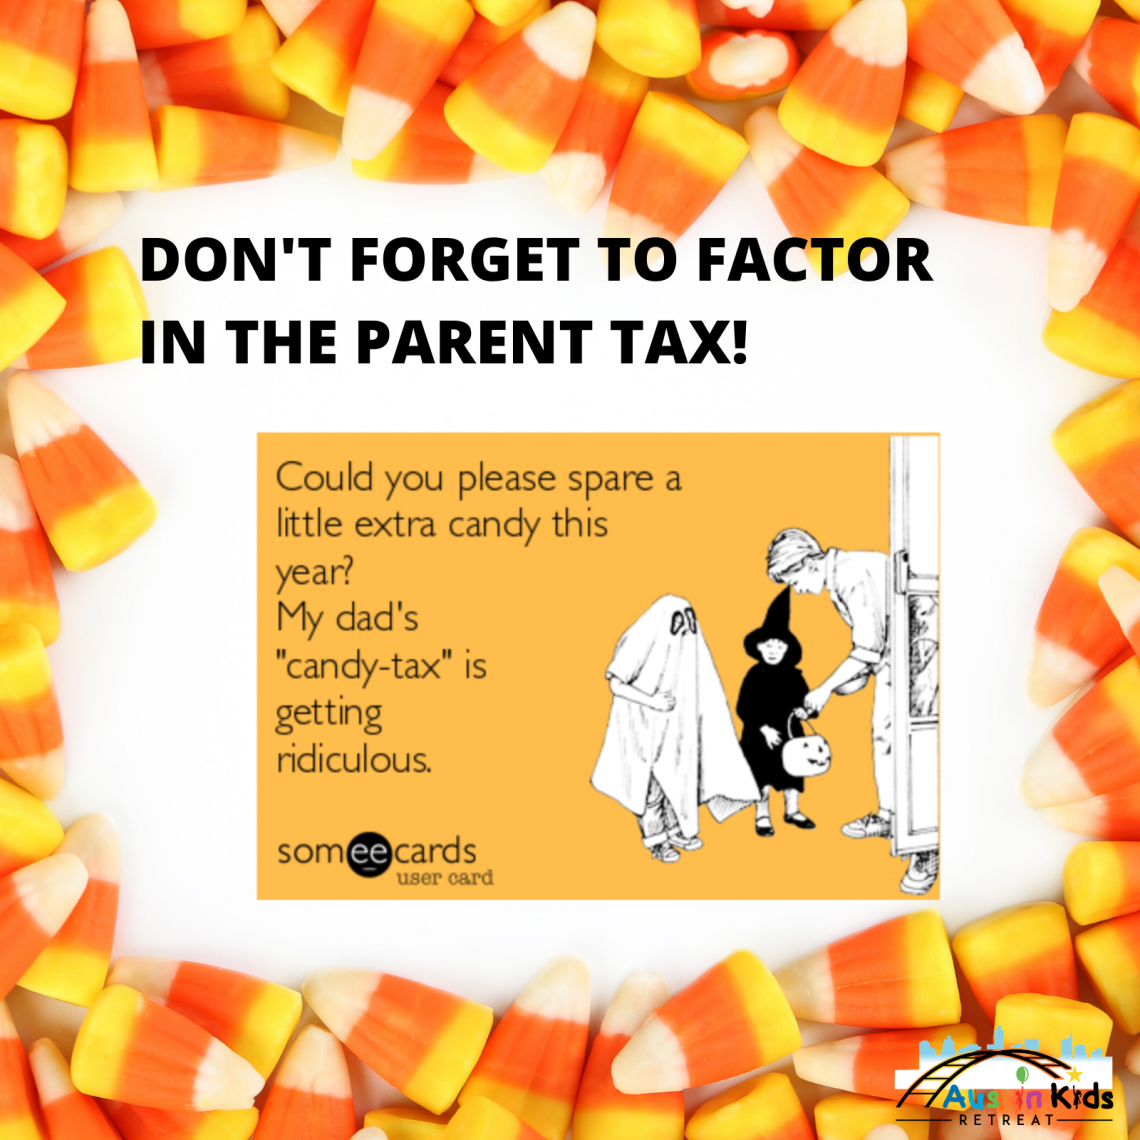 Parent Tax for Halloween Candy